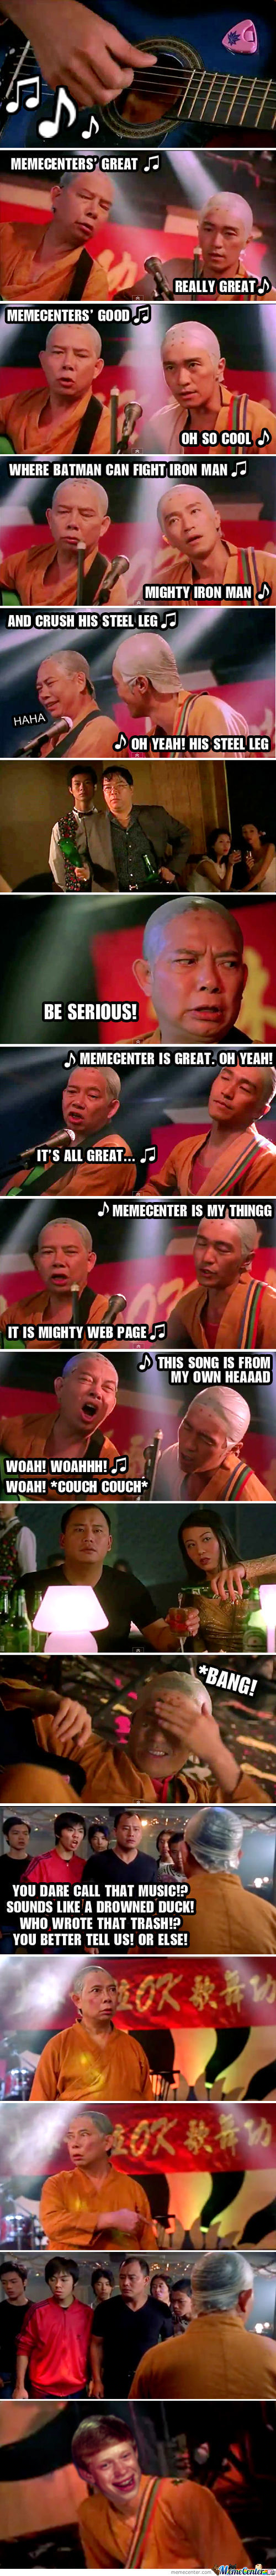 Shaolin Soccer Memecenter Song